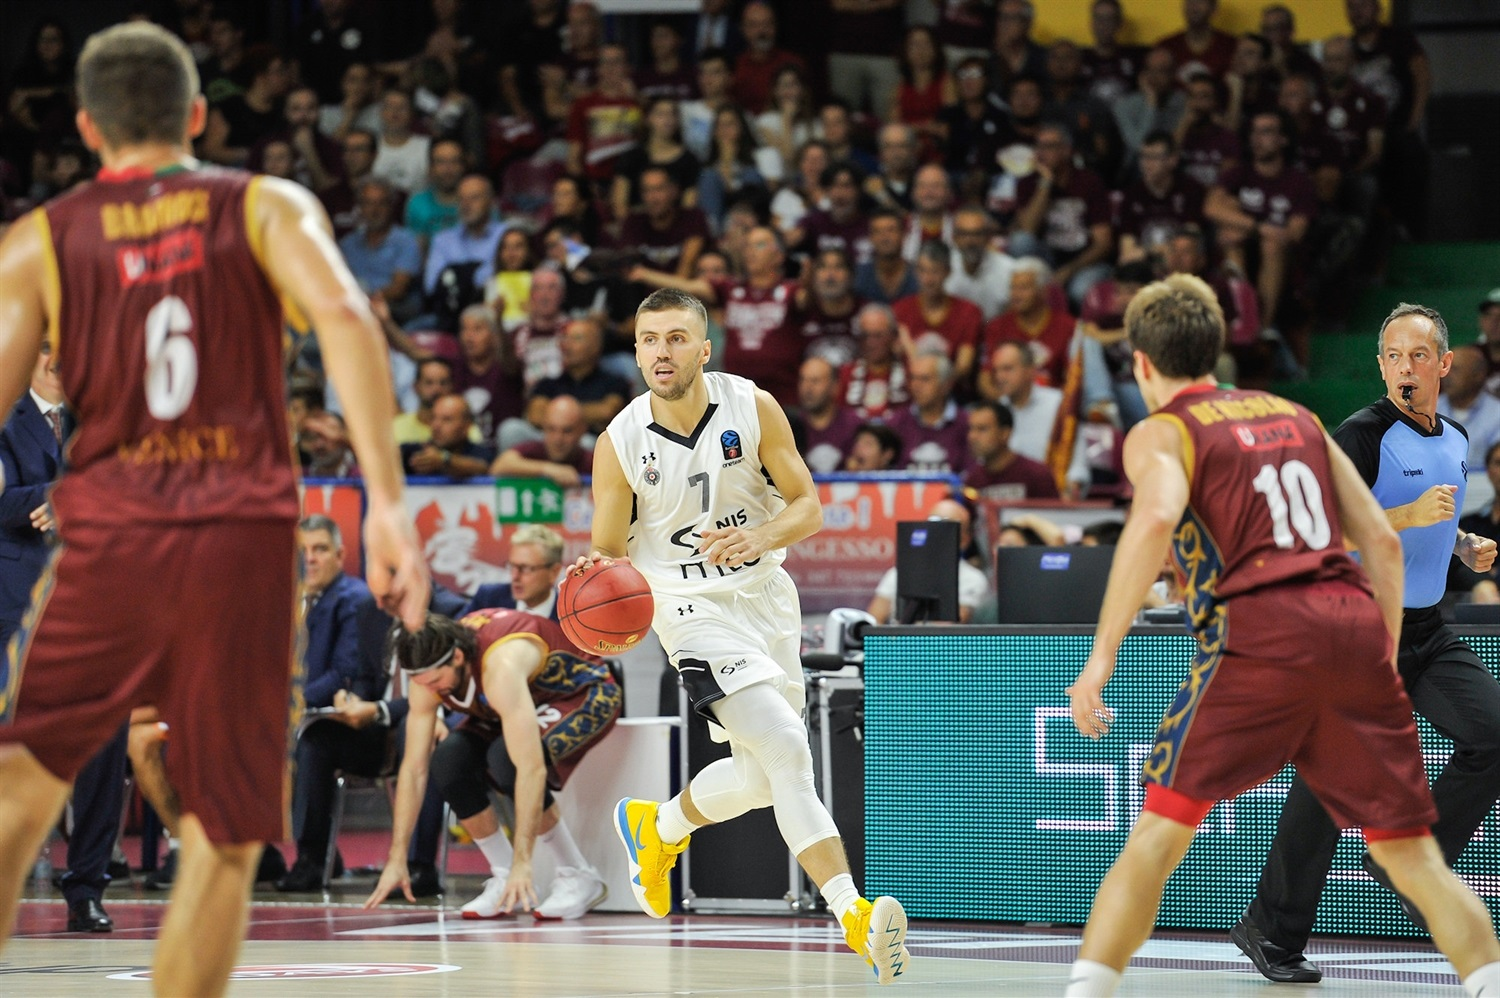 Nemanja Gordic - Partizan NIS Belgrade (photo Reyer Venice) - EC19